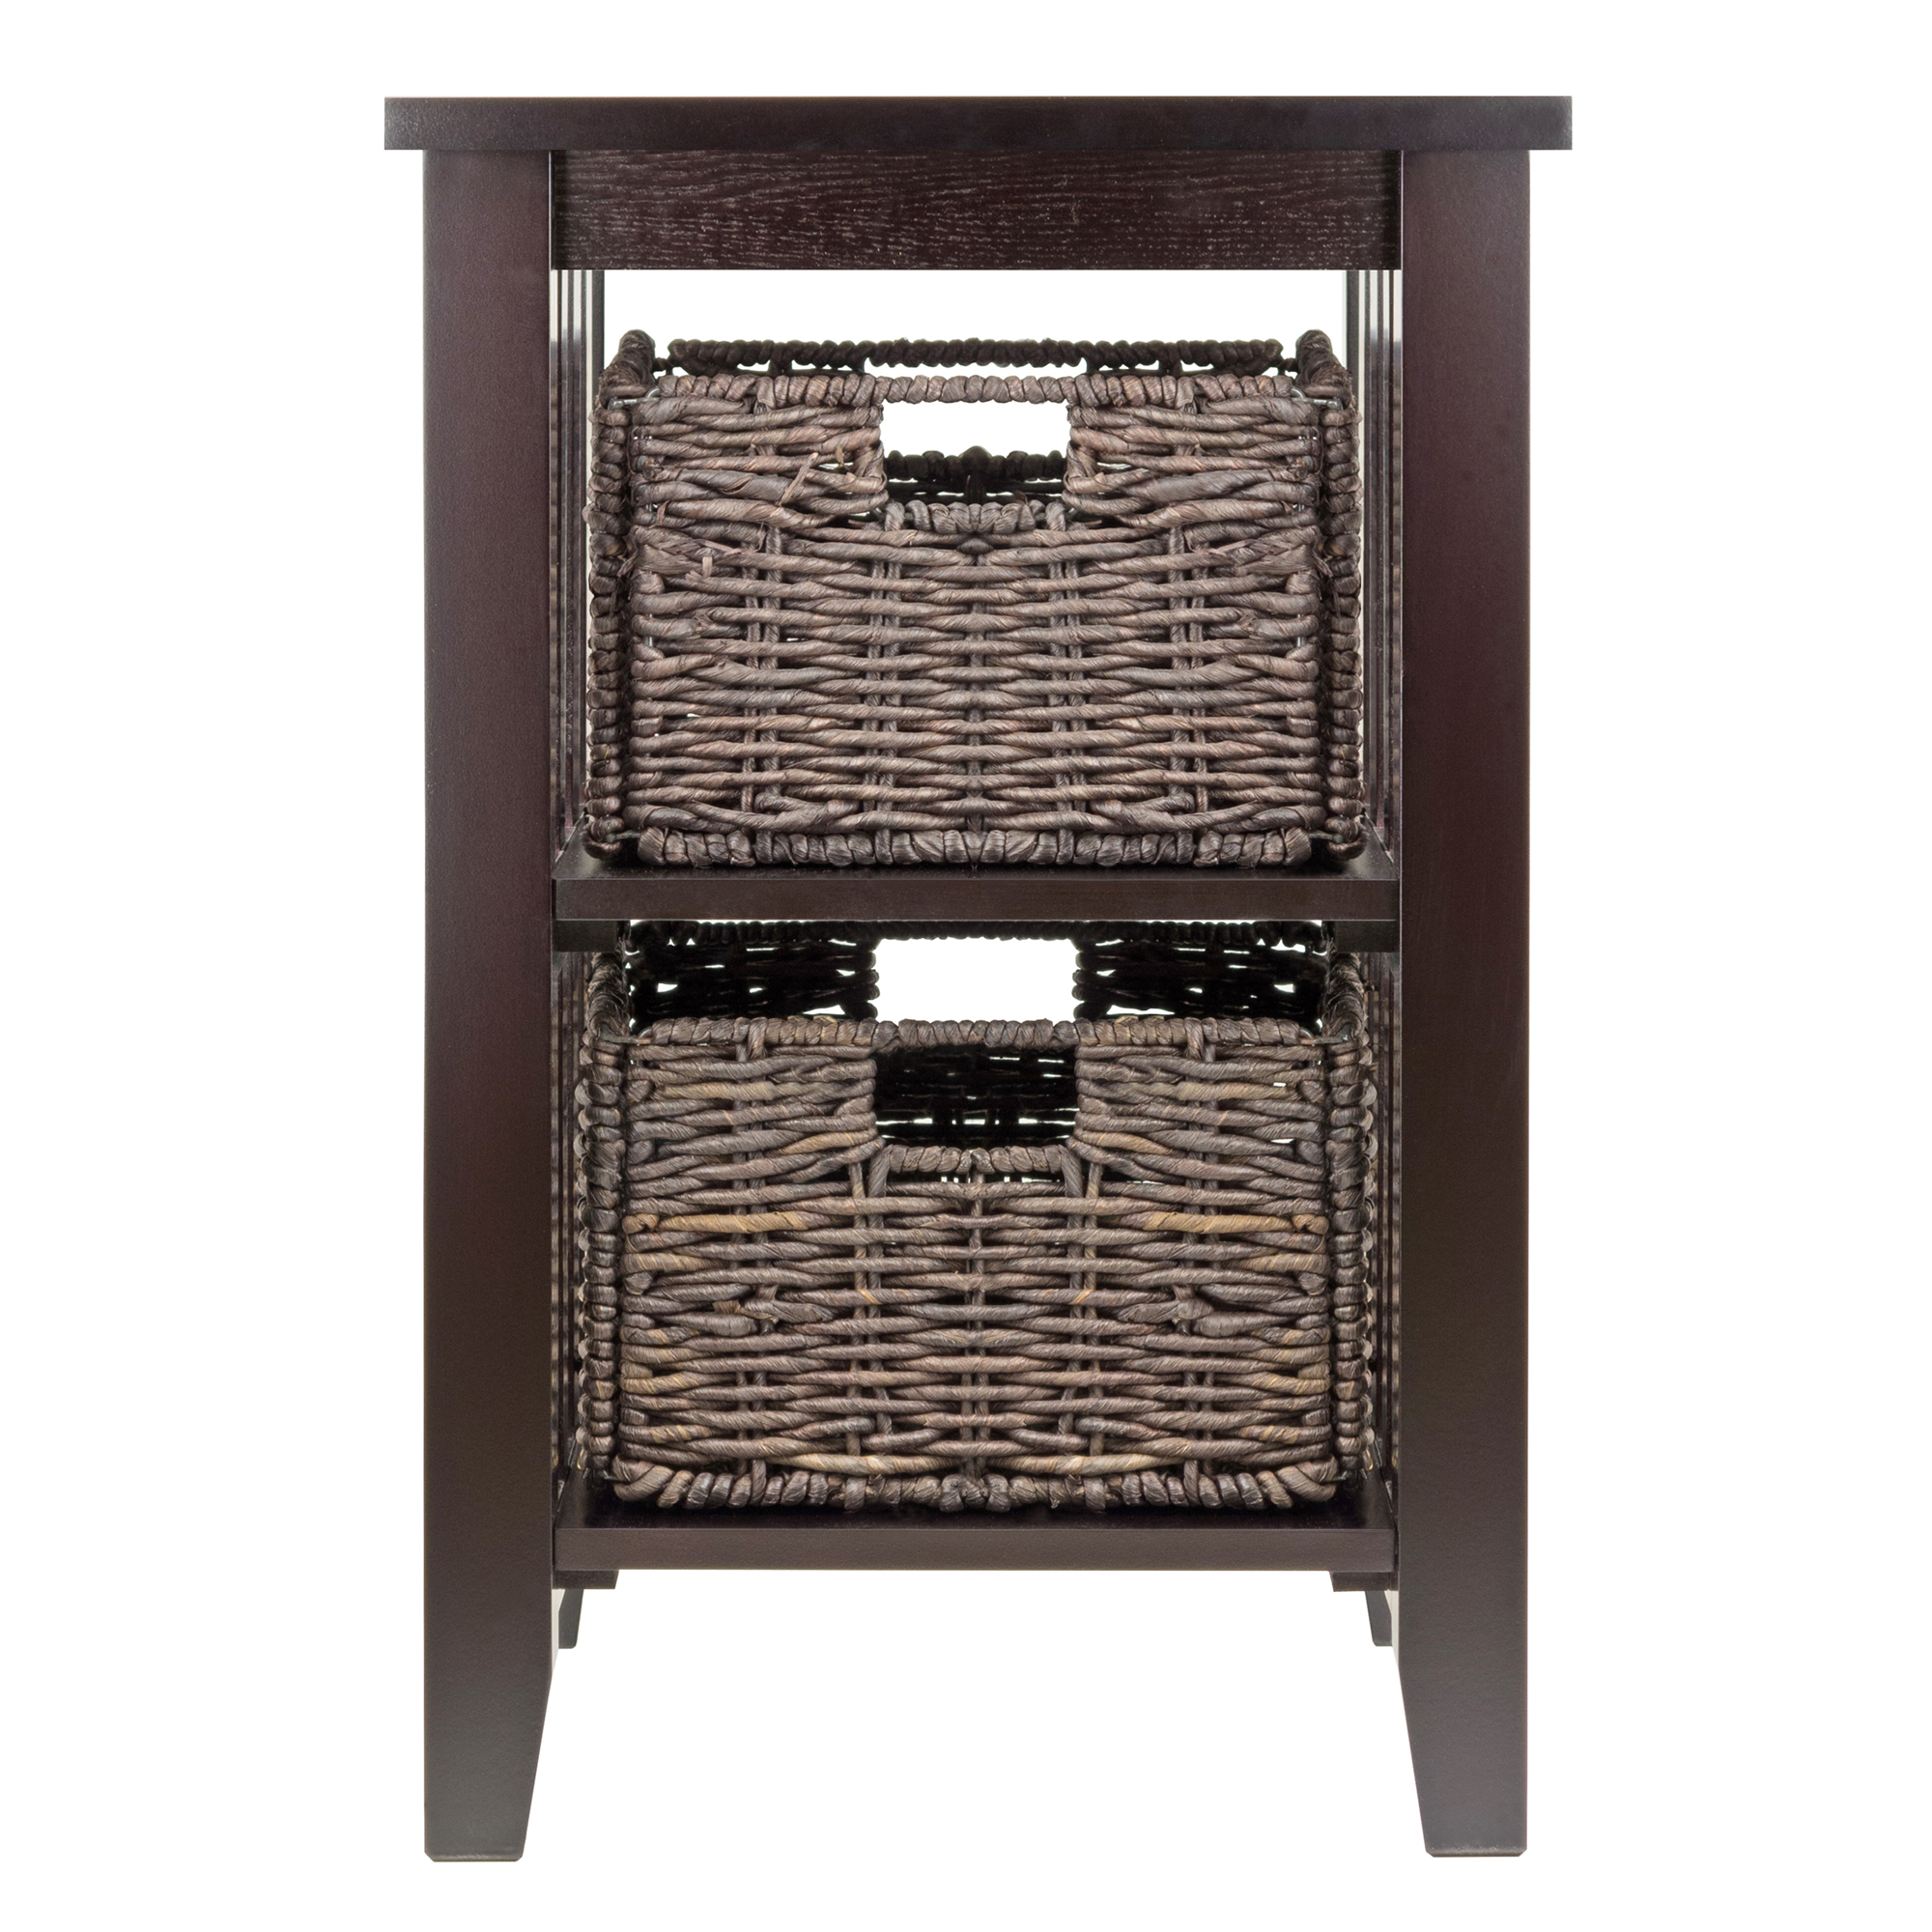 winsome wood morris accent table with storage baskets espresso foldable wicker brown finish bistro height marble and chrome coffee round living room rustic ikea black bedside tiny